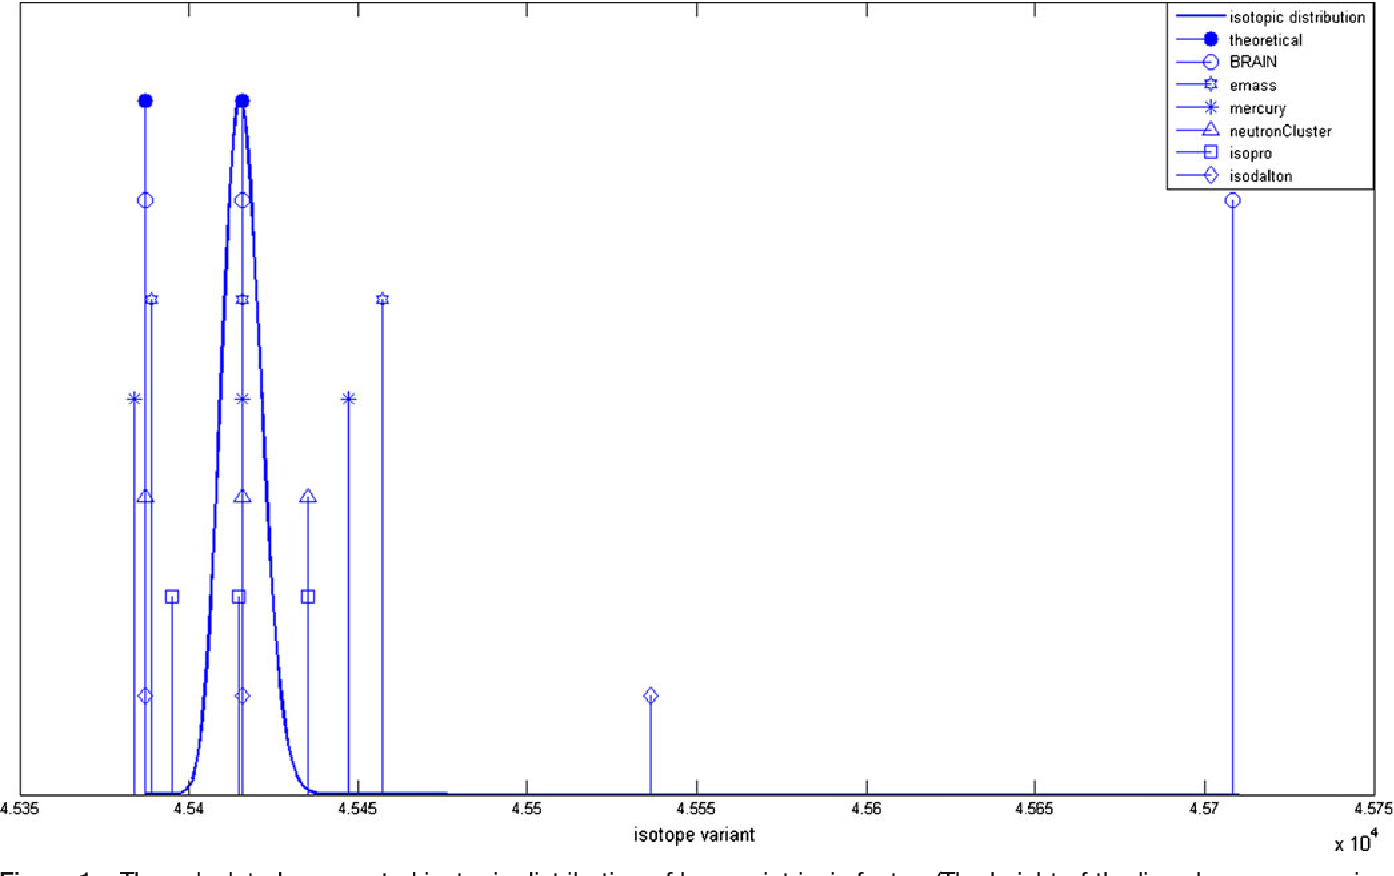 Figure 1. The calculated aggregated isotopic distribution of human intrinsic factor. (The height of the lines have no meaning, they are only chosen to facilitate the interpretation of the graph.)